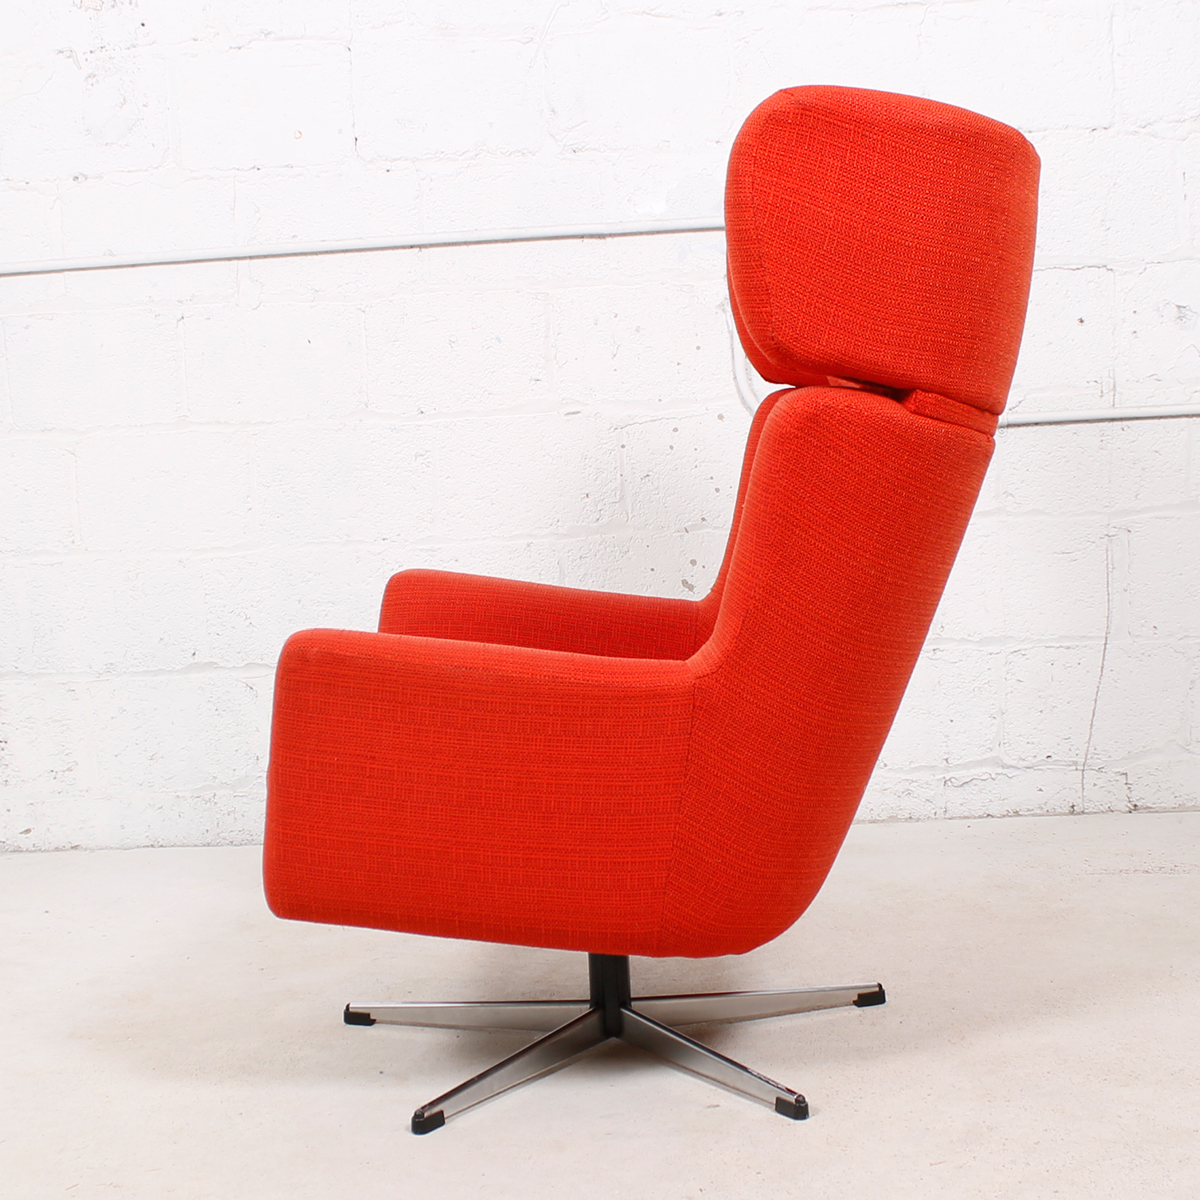 'Papa Goes Star Trek' Red Upholstered Swivel Lounge Chair w / Chrome Star Base